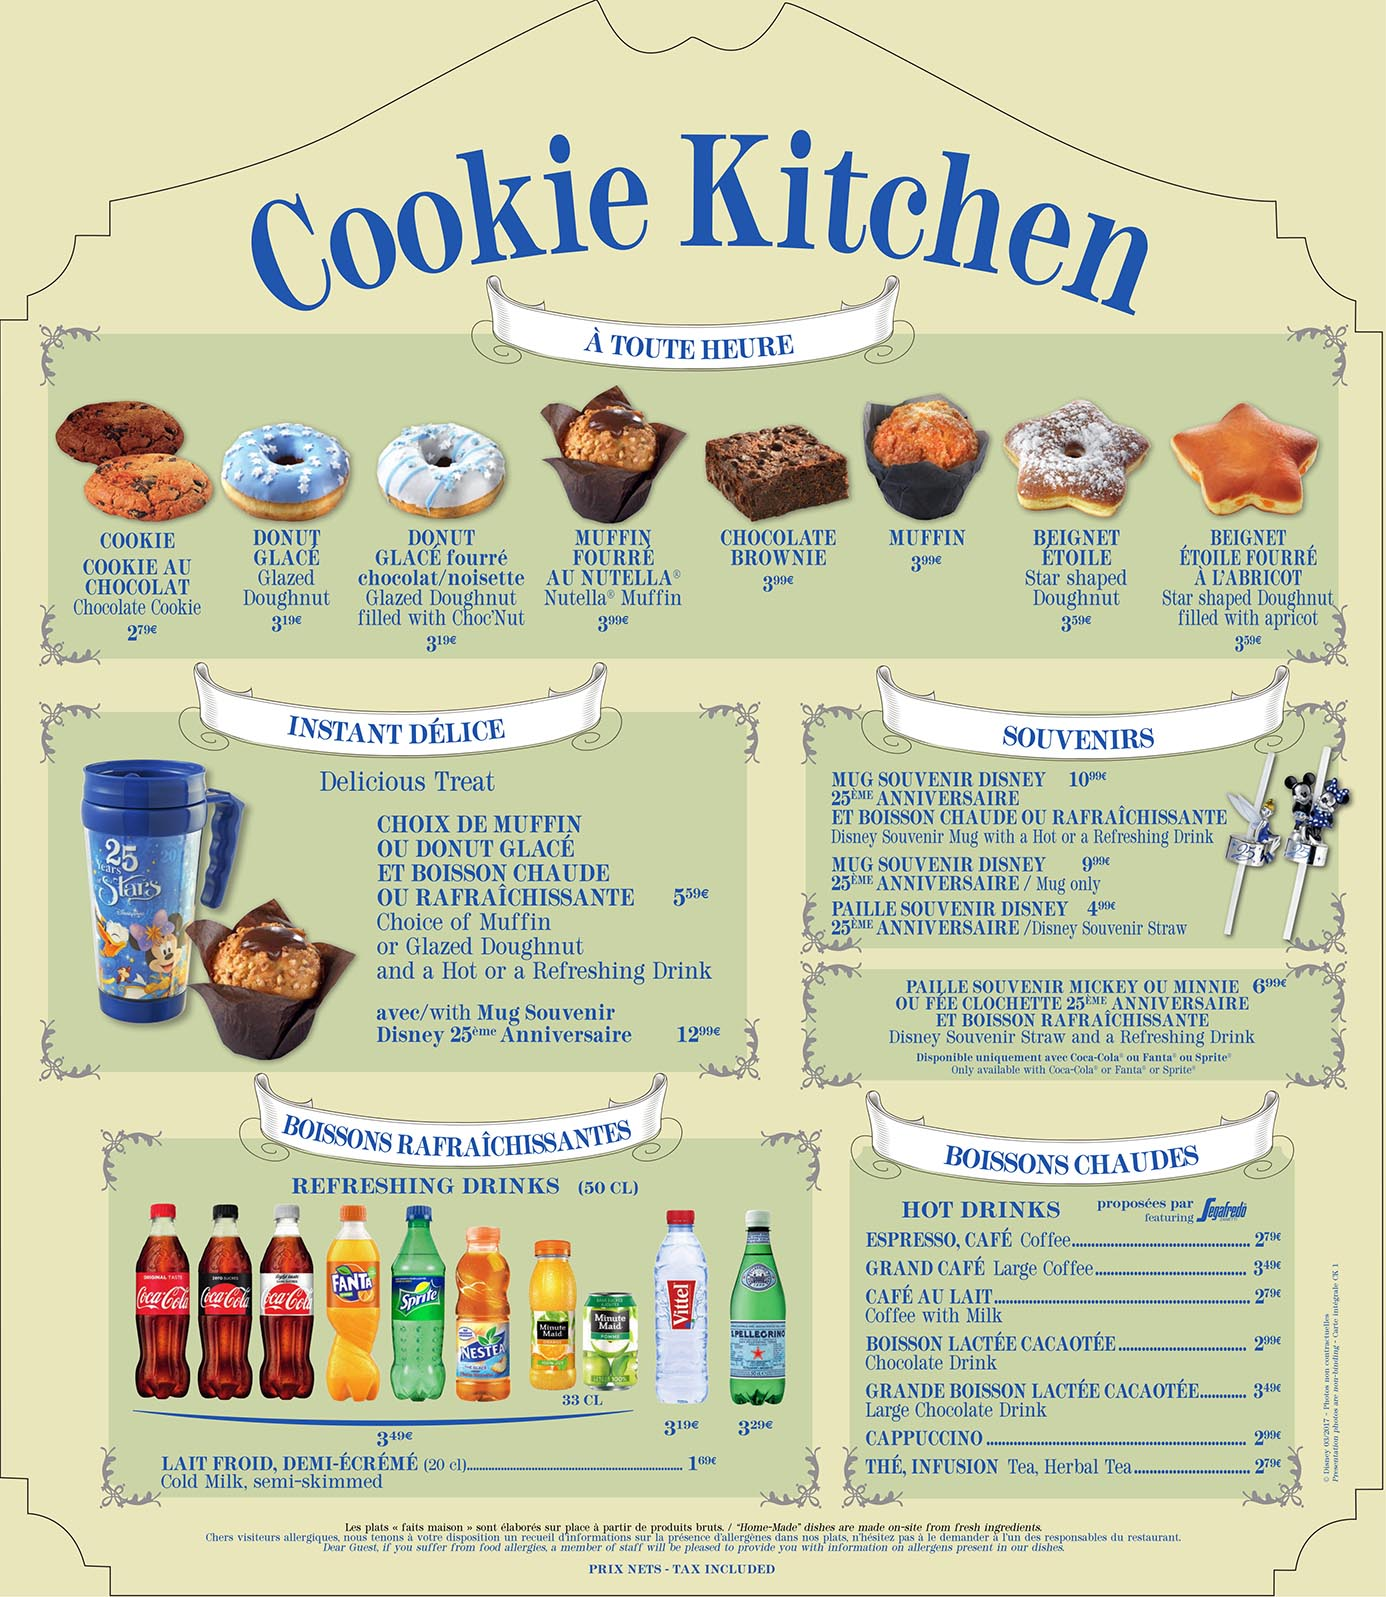 Cookie Kitchen Menu at Disneyland Paris